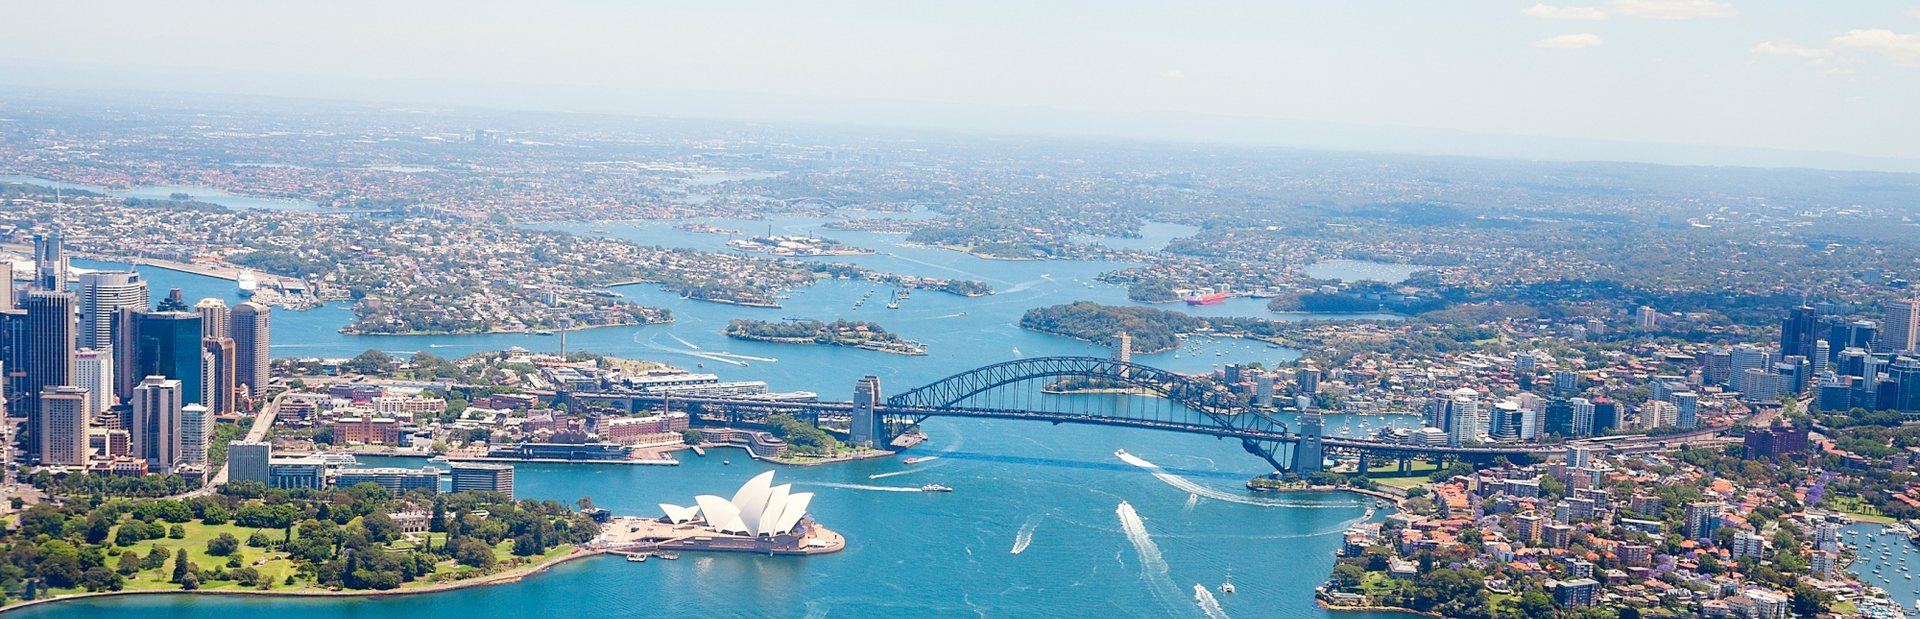 5 Things To Do On A Sydney Day Charter